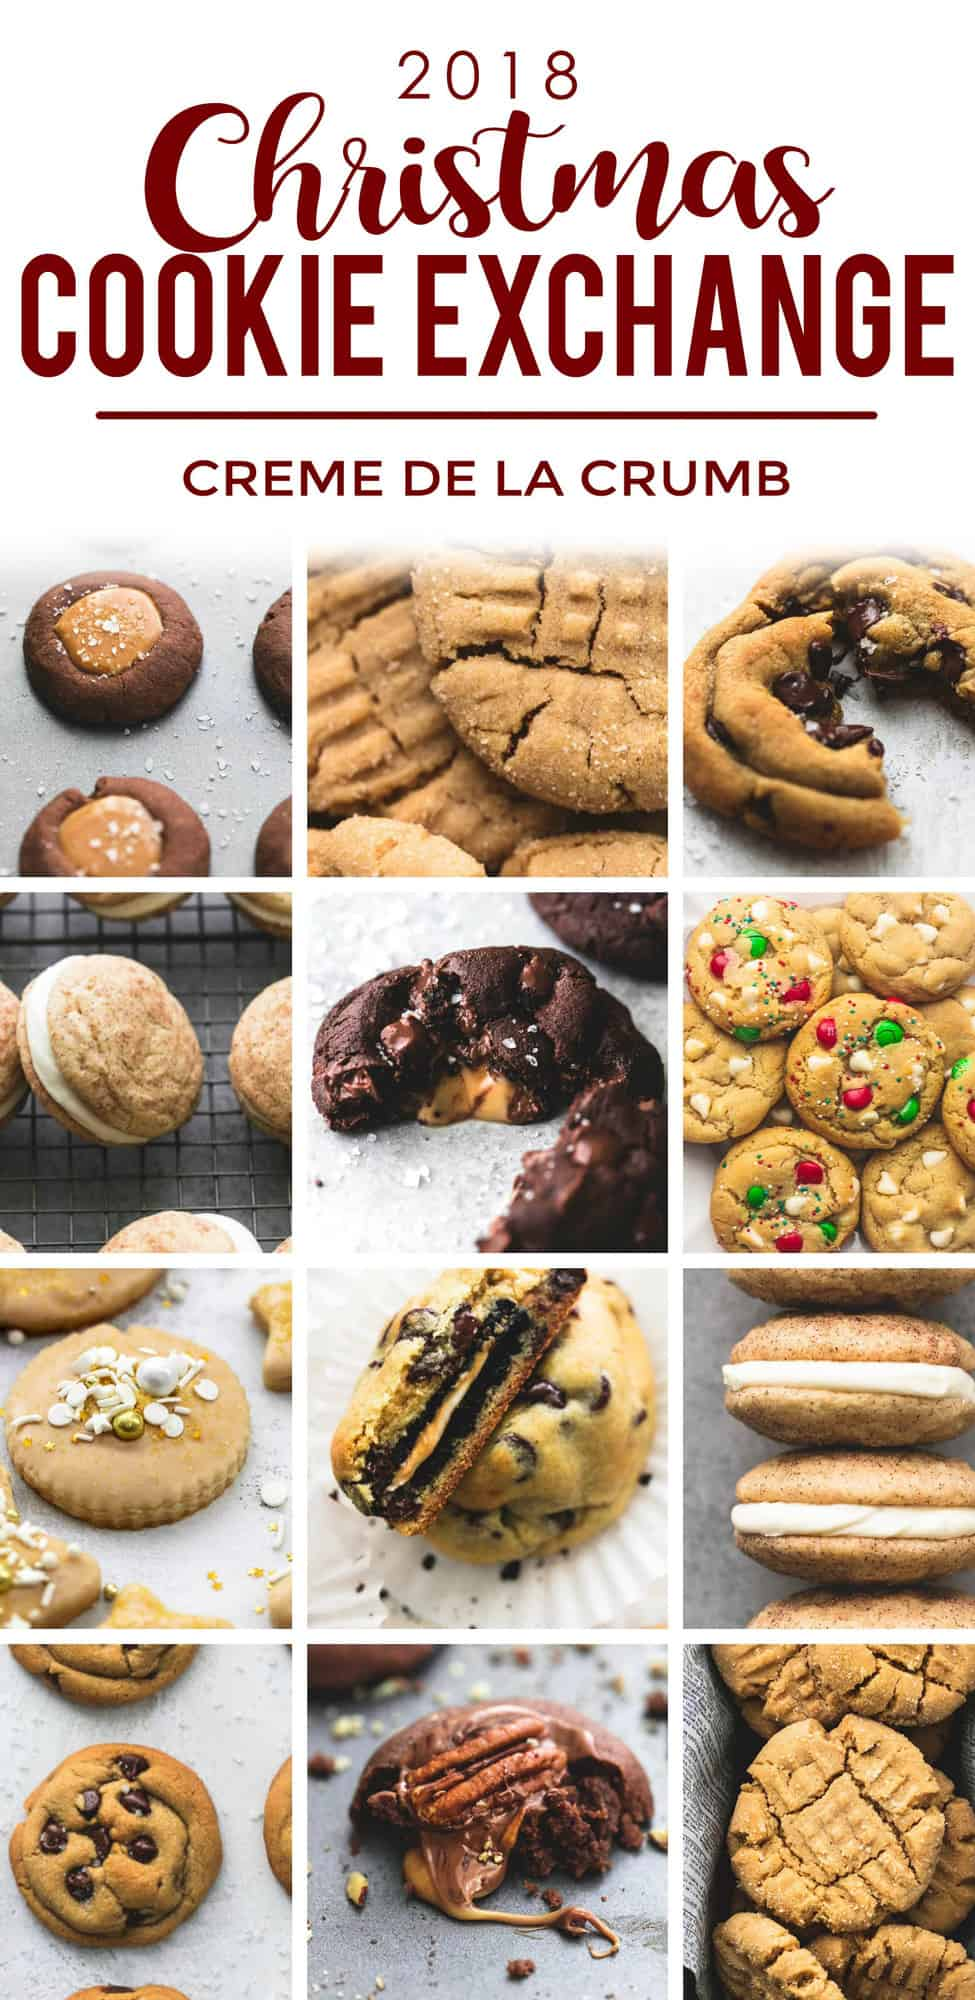 The Best Cookie Exchange recipes 2018 | lecremedelacrumb.com